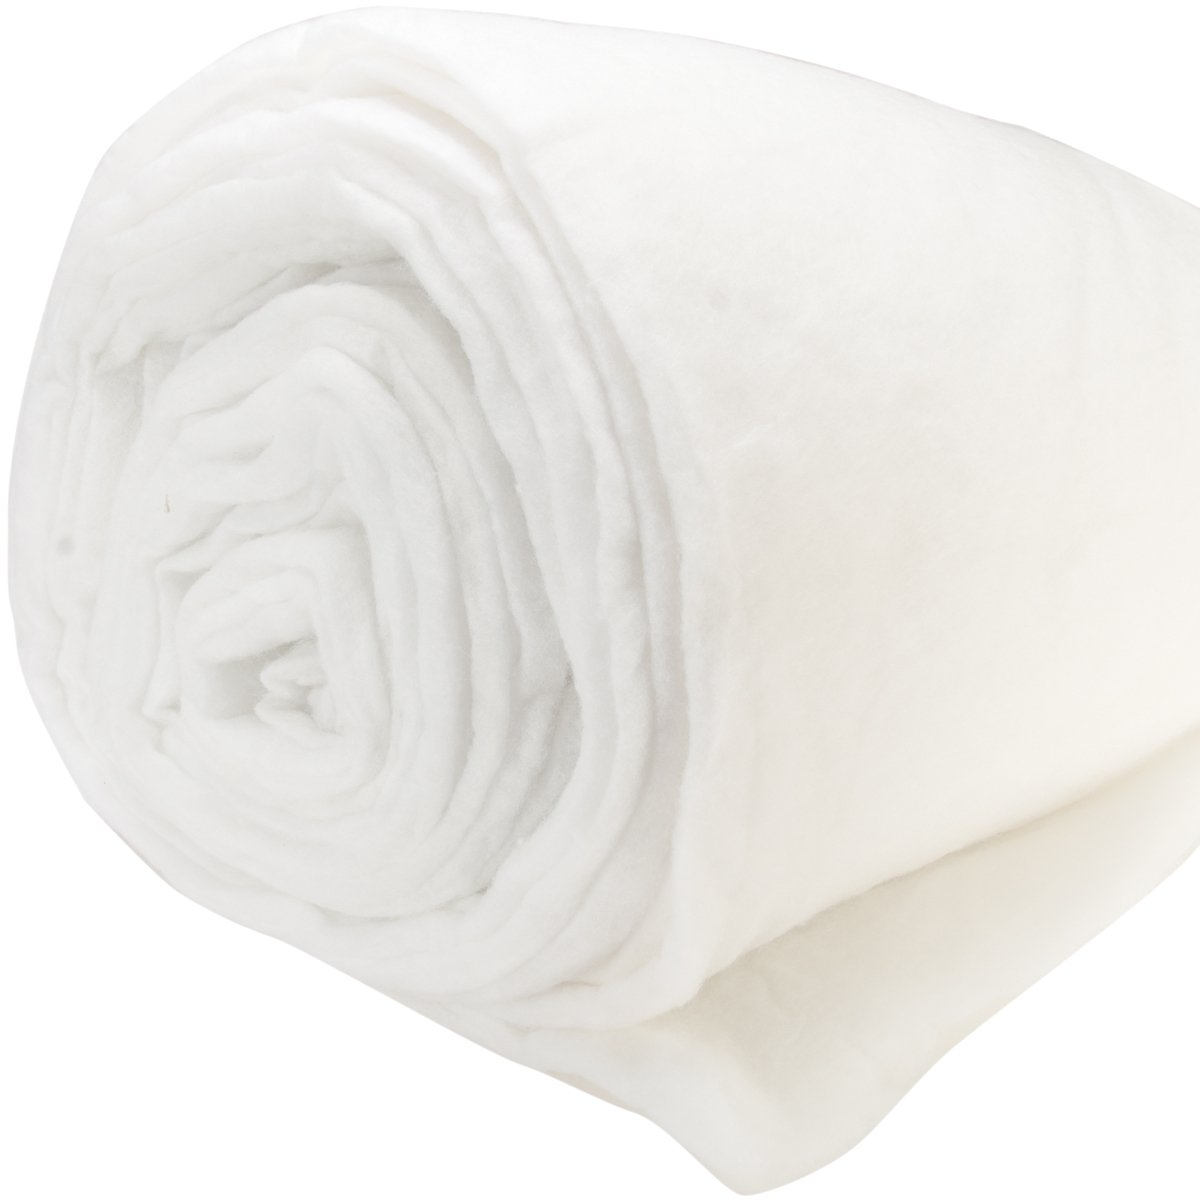 Polyester Batting Medium To High Loft 12oz Per Yard-Double Rolled 100X25 Yards Notions - In Network MS12D